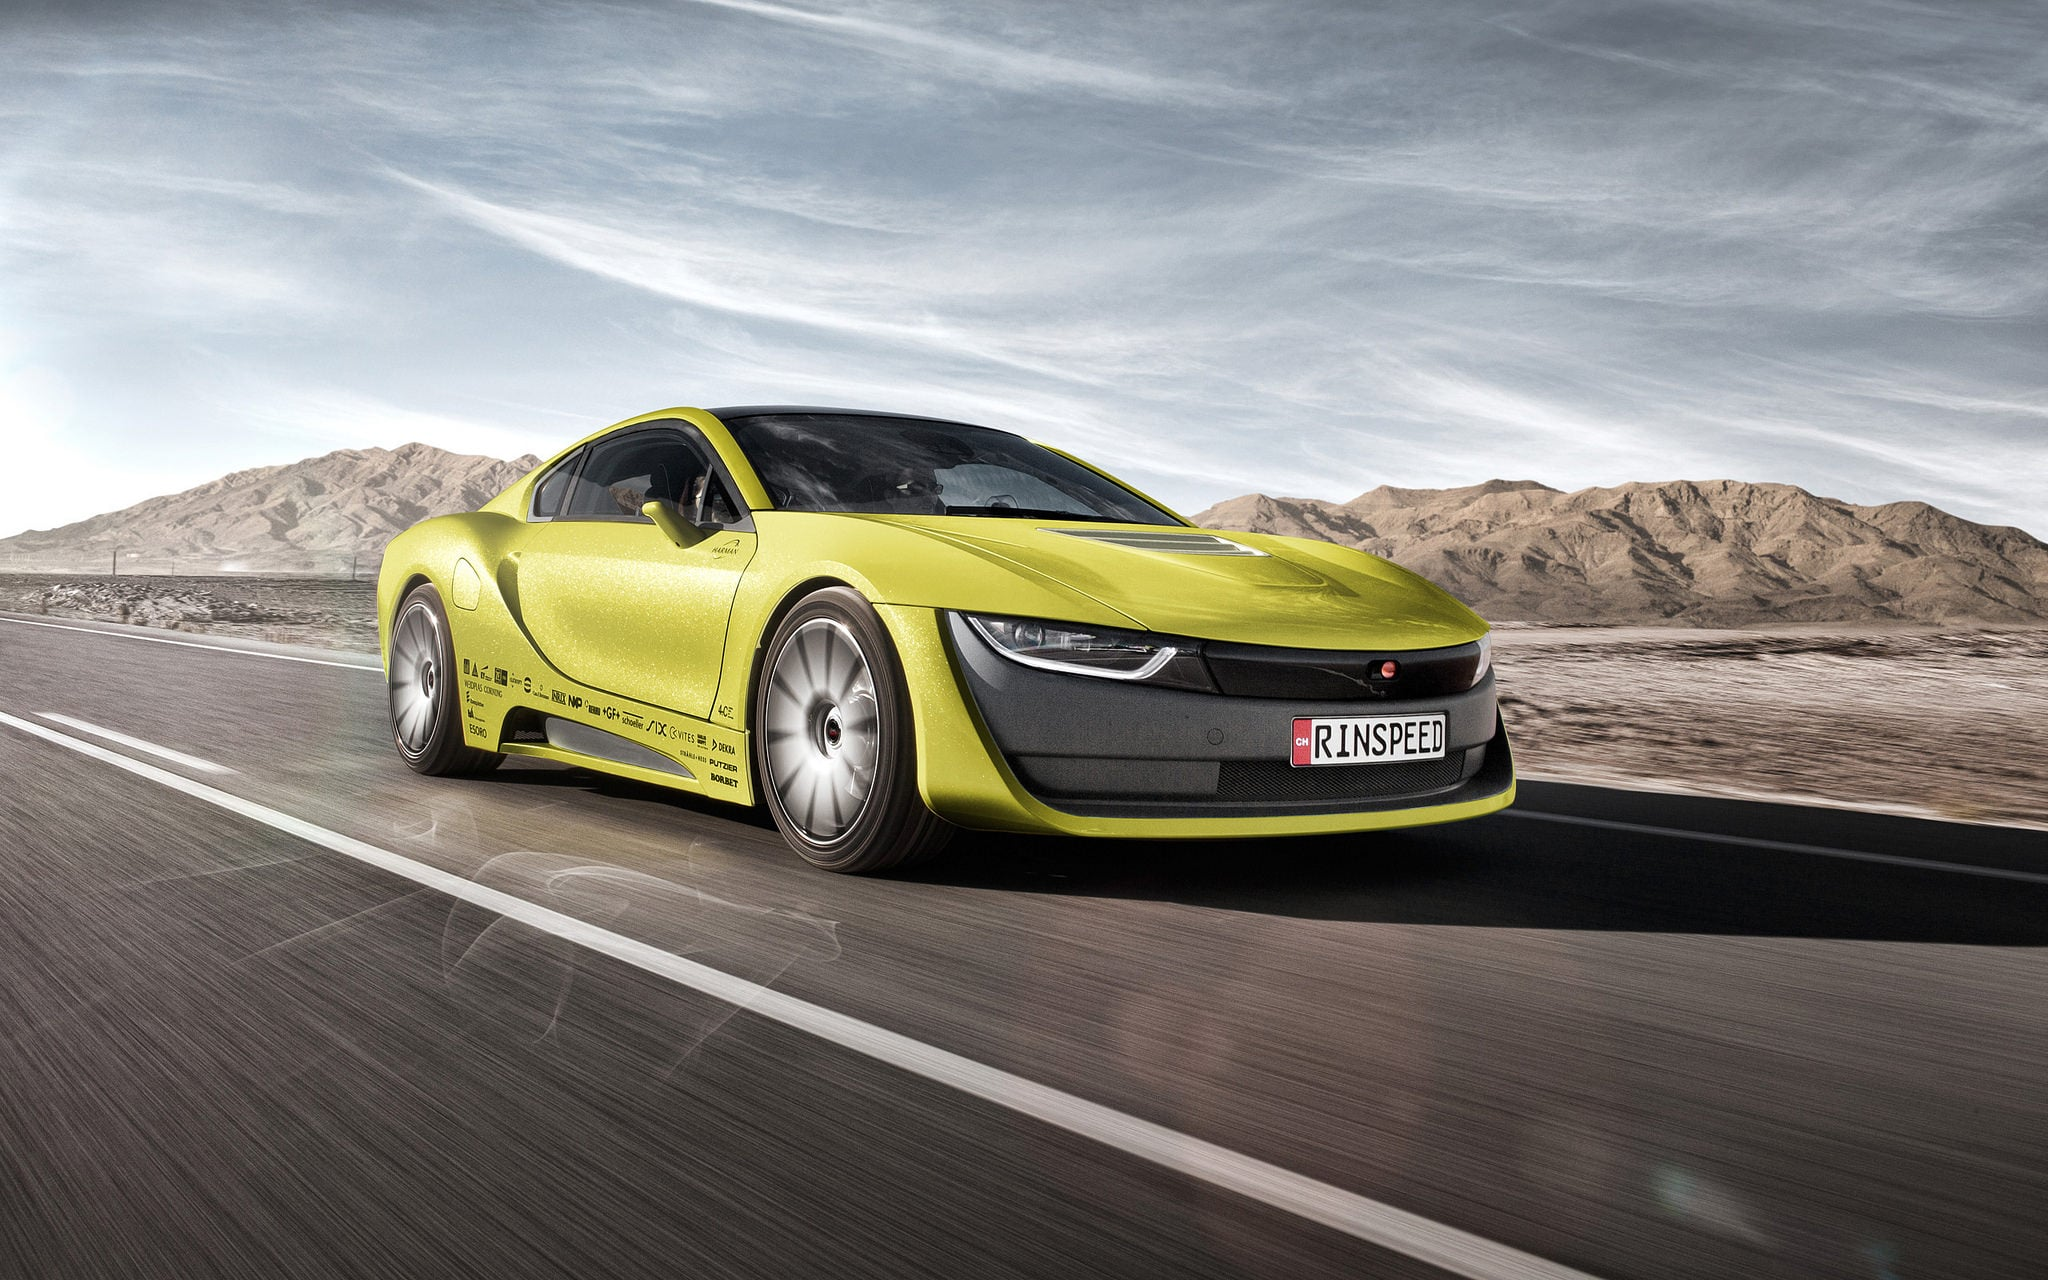 2016 Rinspeed Etos electric car new wallpapers